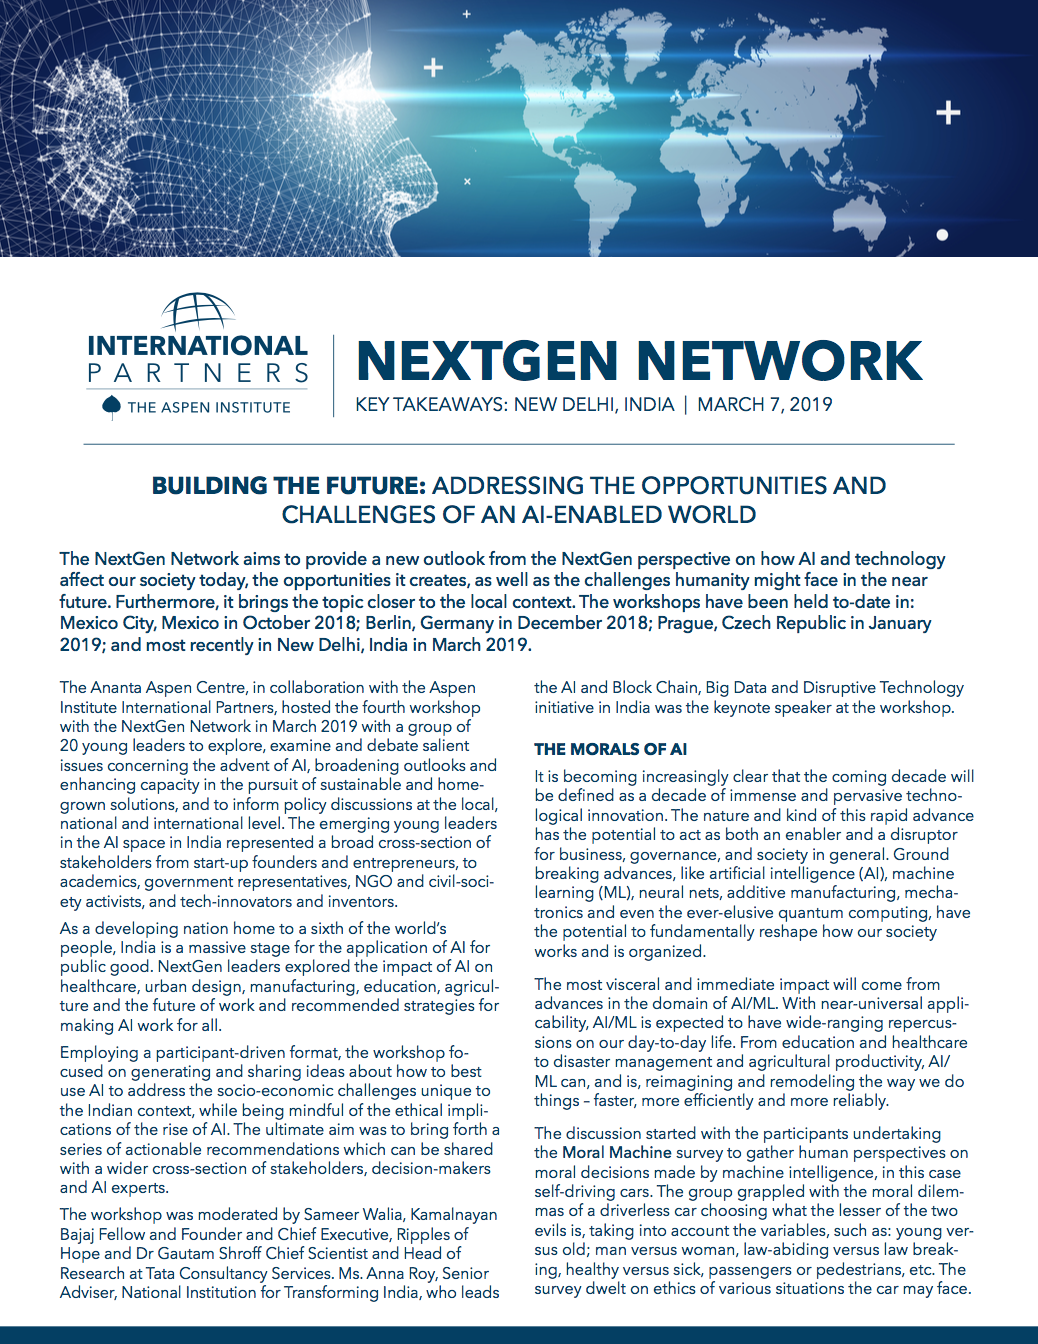 NextGen Network: New Delhi, India